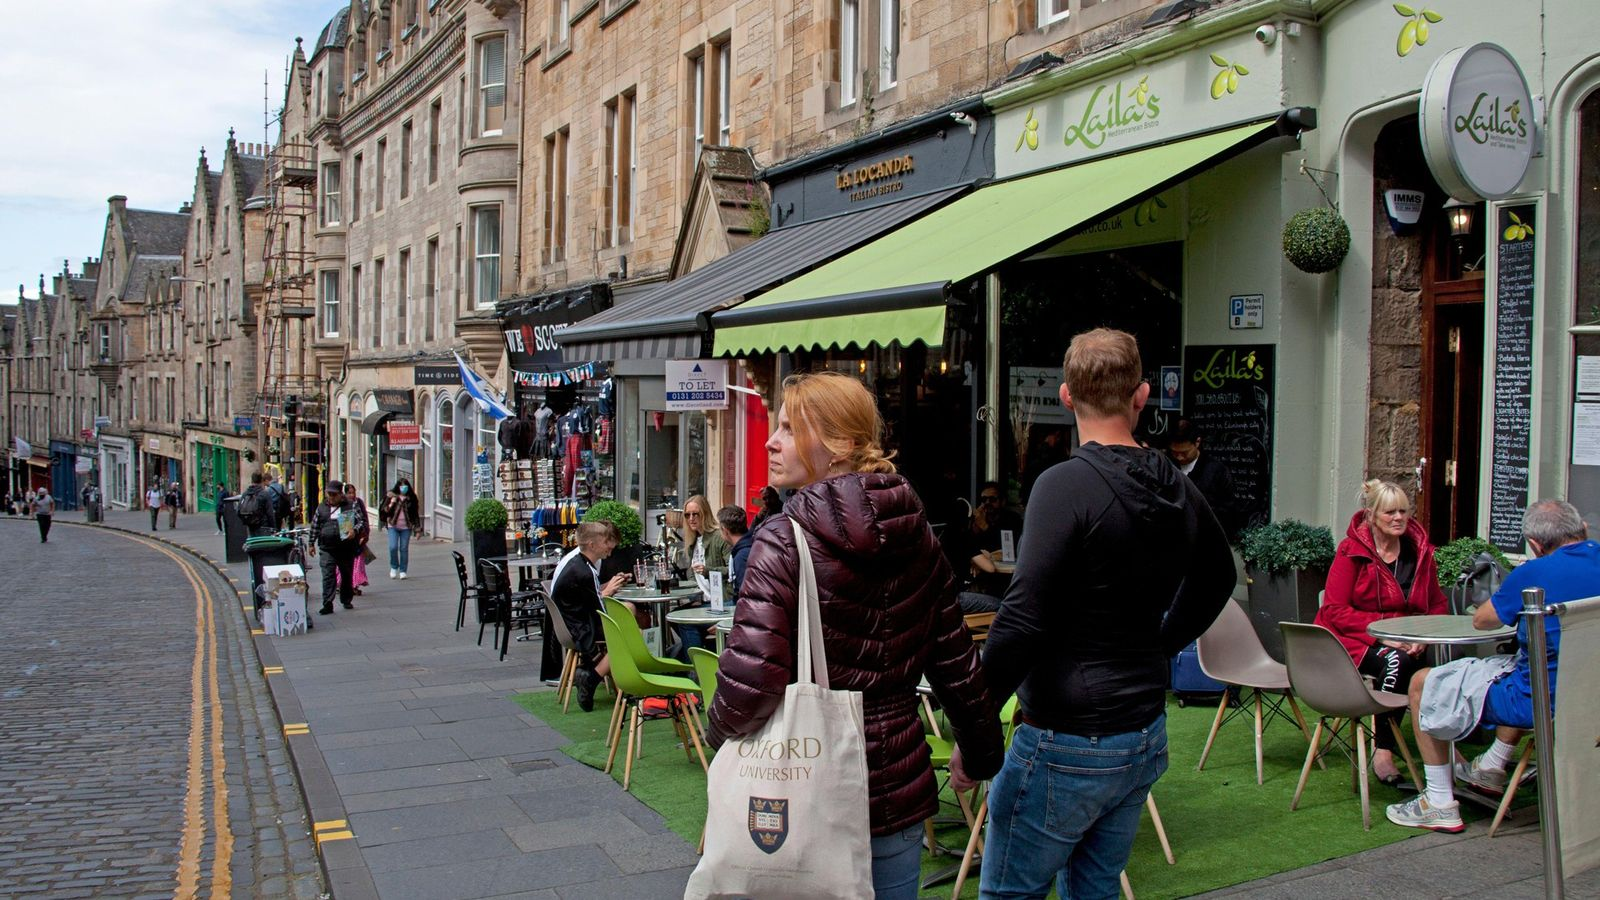 In Edinburgh's Old Town, Cockburn Street has been closed to cars since July to give residents, ...